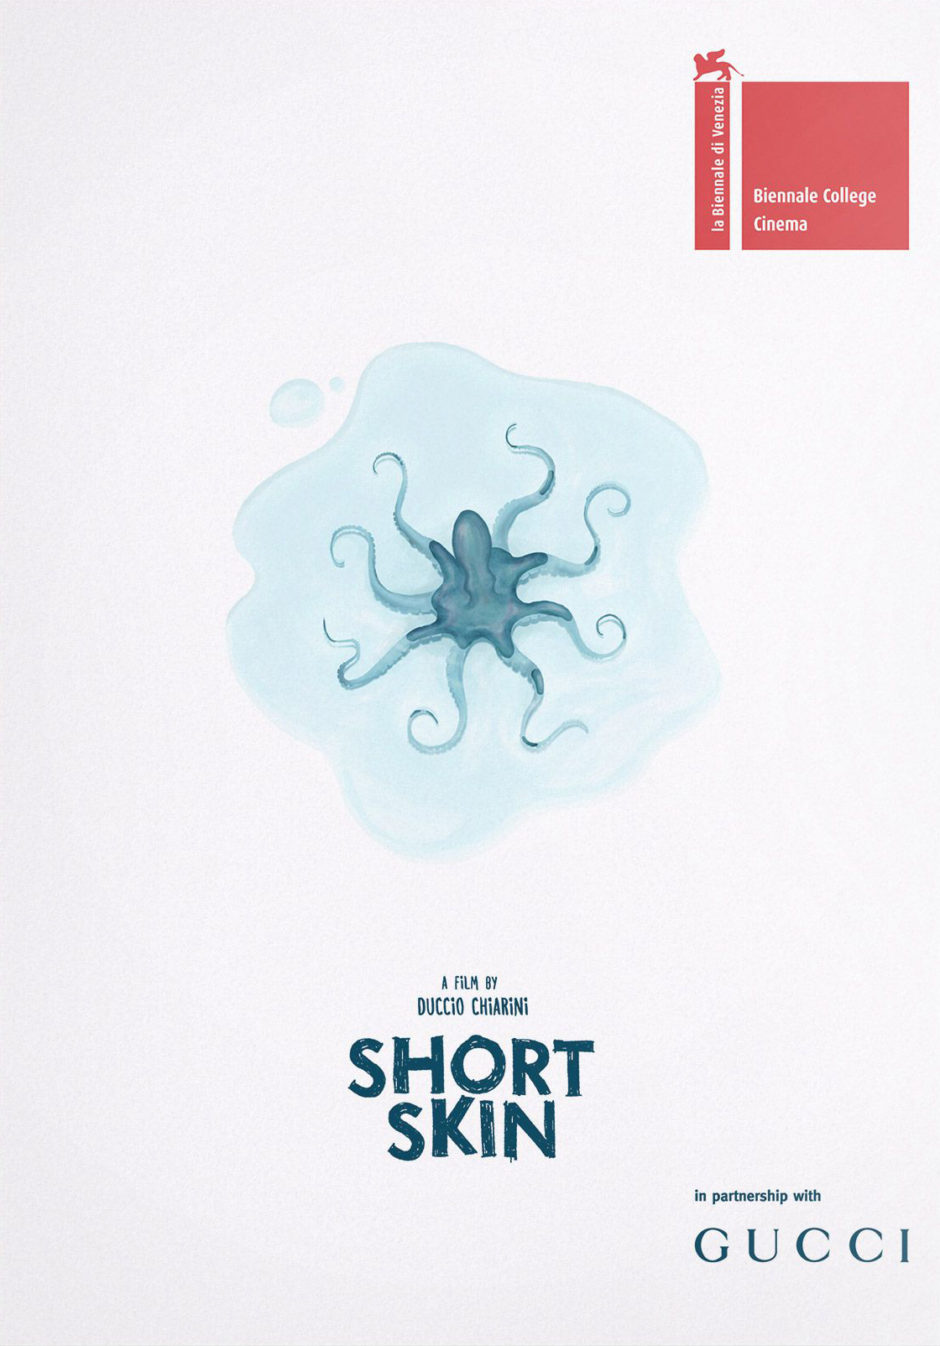 official_iconographic_poster_short-skin